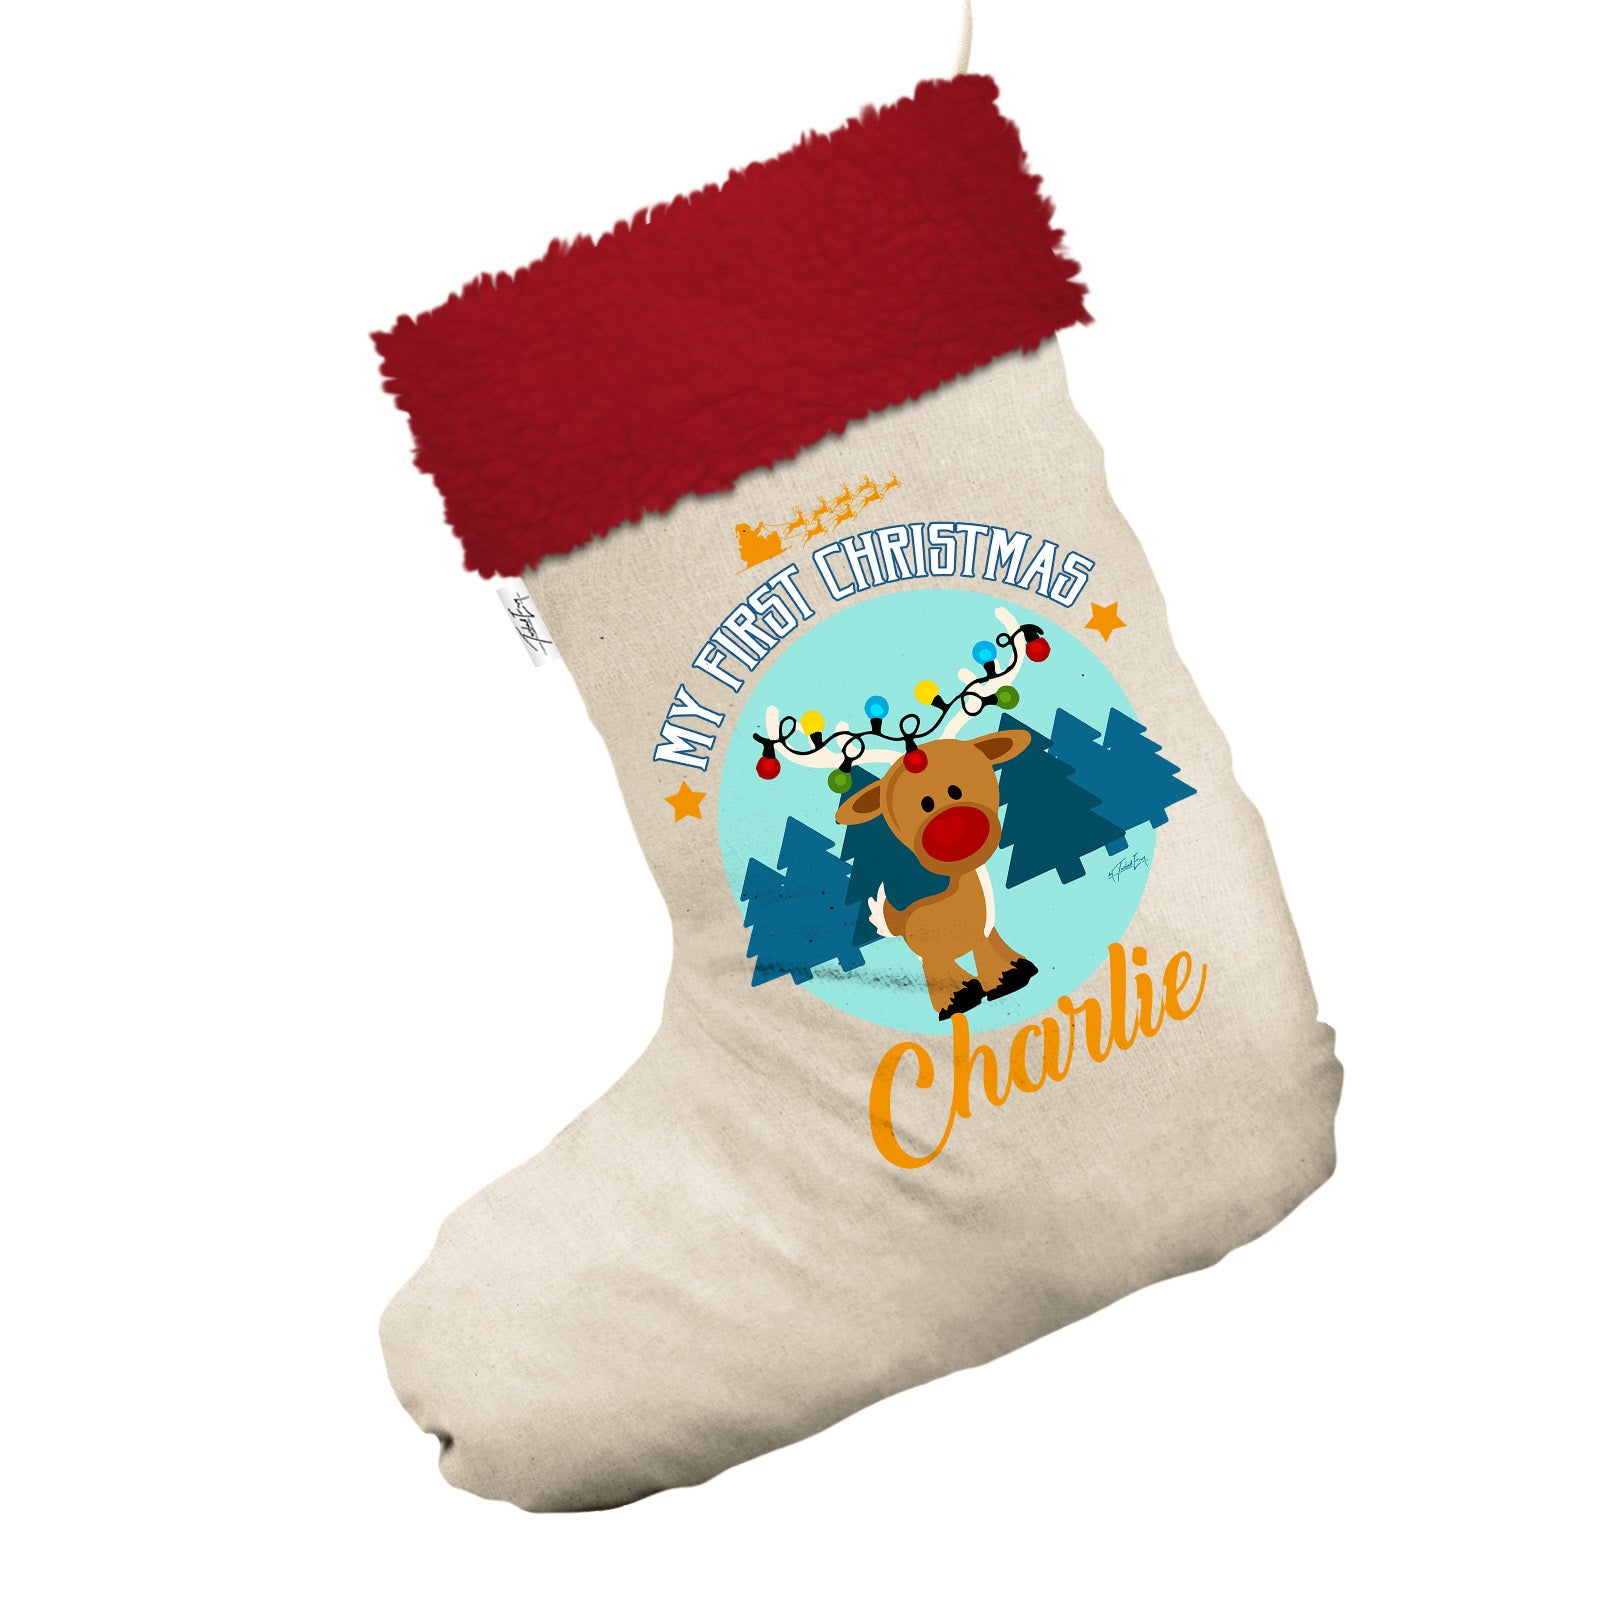 personalised my first christmas with reindeer white christmas stocking gift bag with red fur trim - Red And White Christmas Stockings